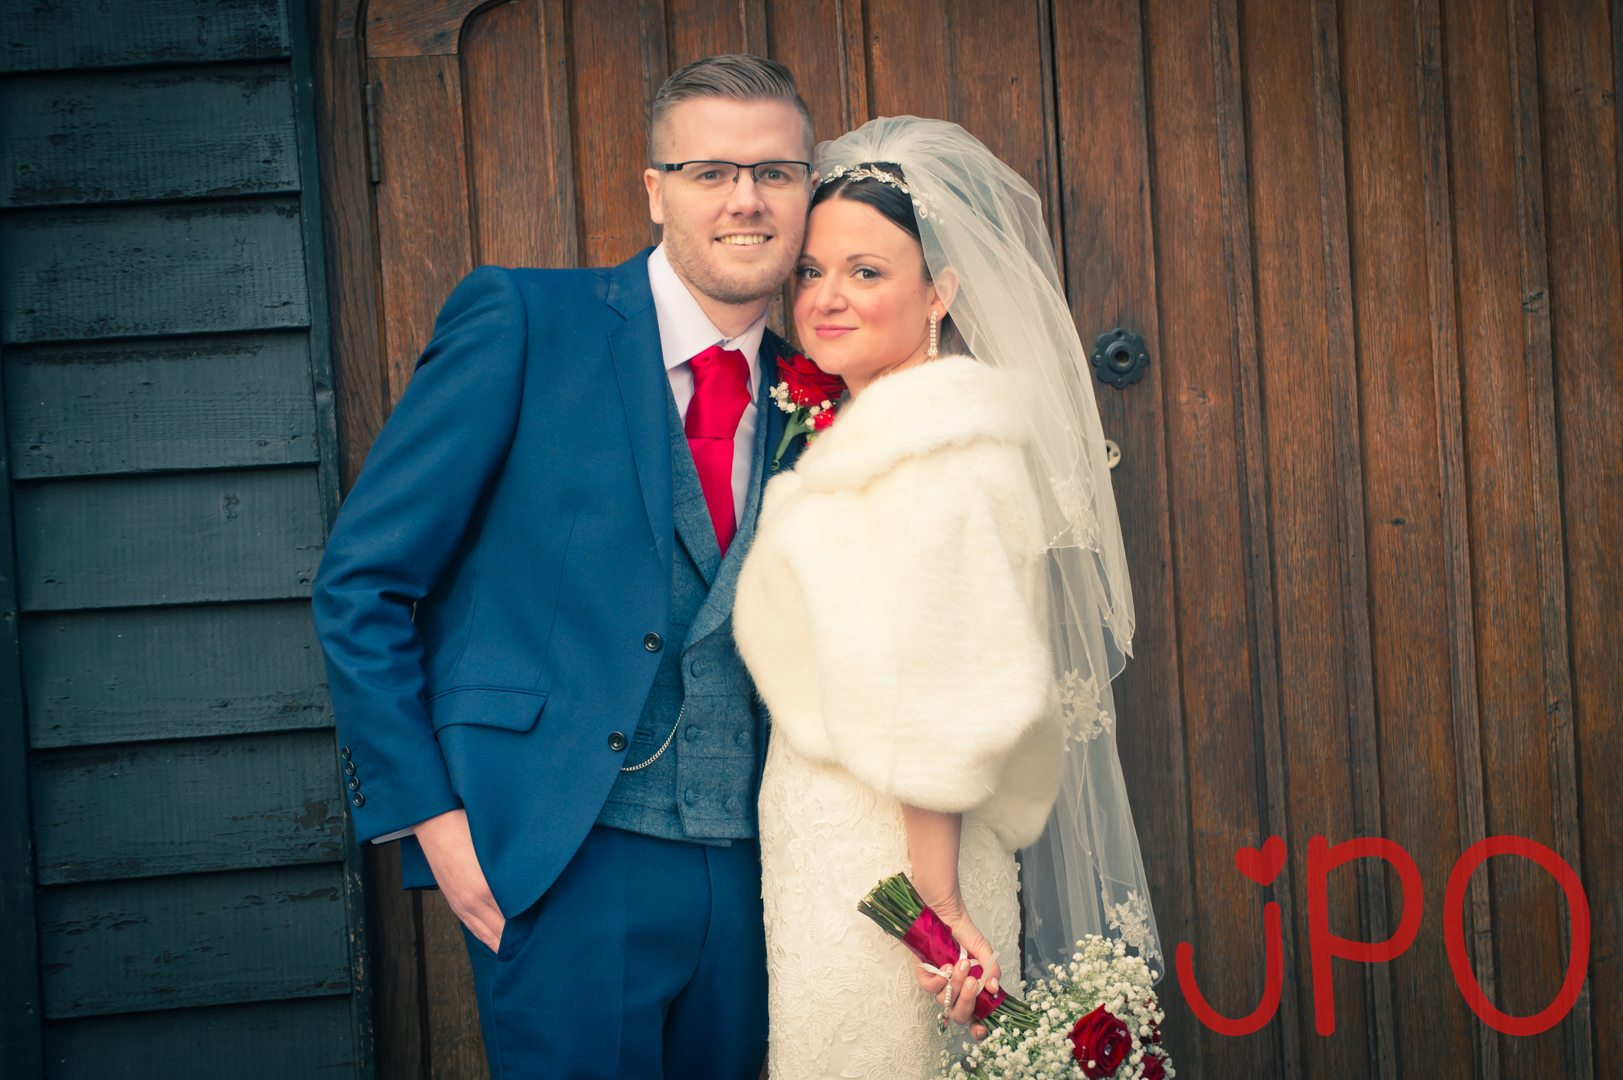 Charlene and Kane's wedding at great hallingbury manor herts